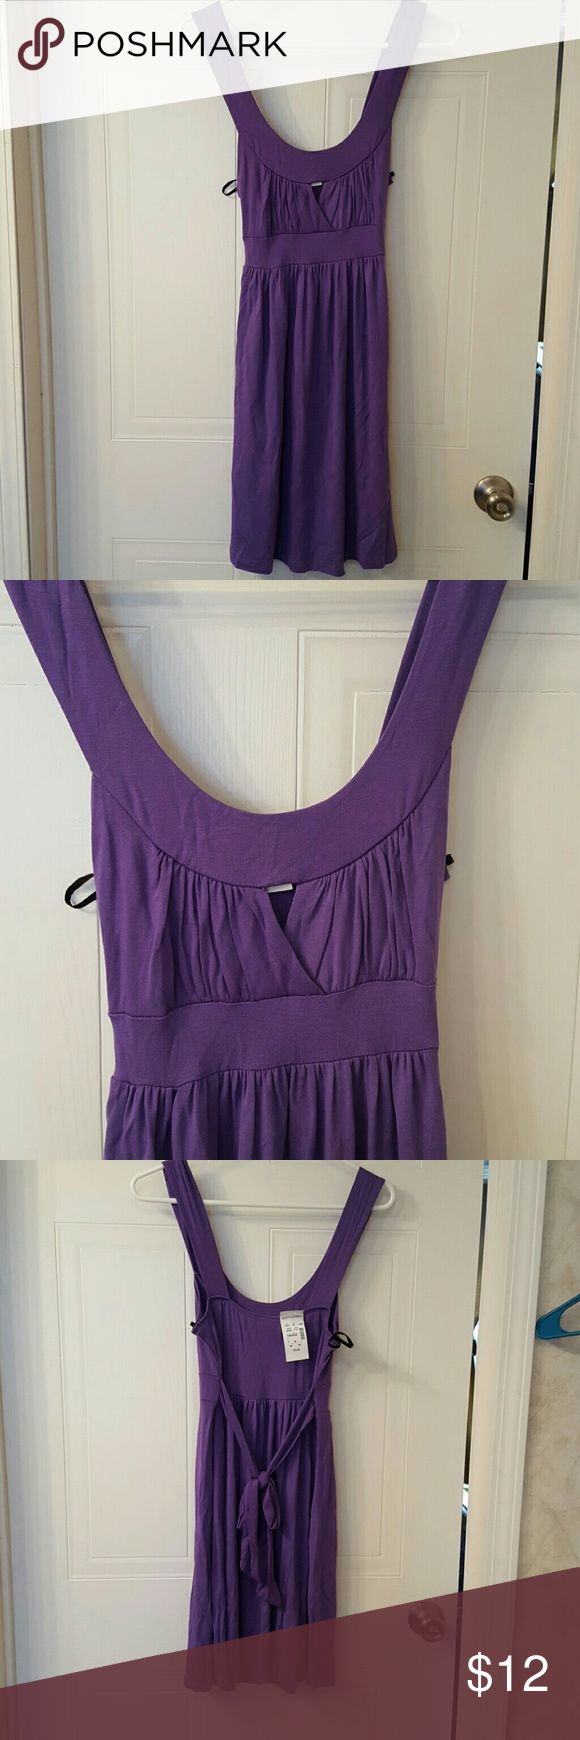 NWT Purple Cutout Dress NWT- Size Medium- Body Central Dress- Purple with scoop neckline and Cutout- Midthigh length- Ties in the back Body Central Dresses